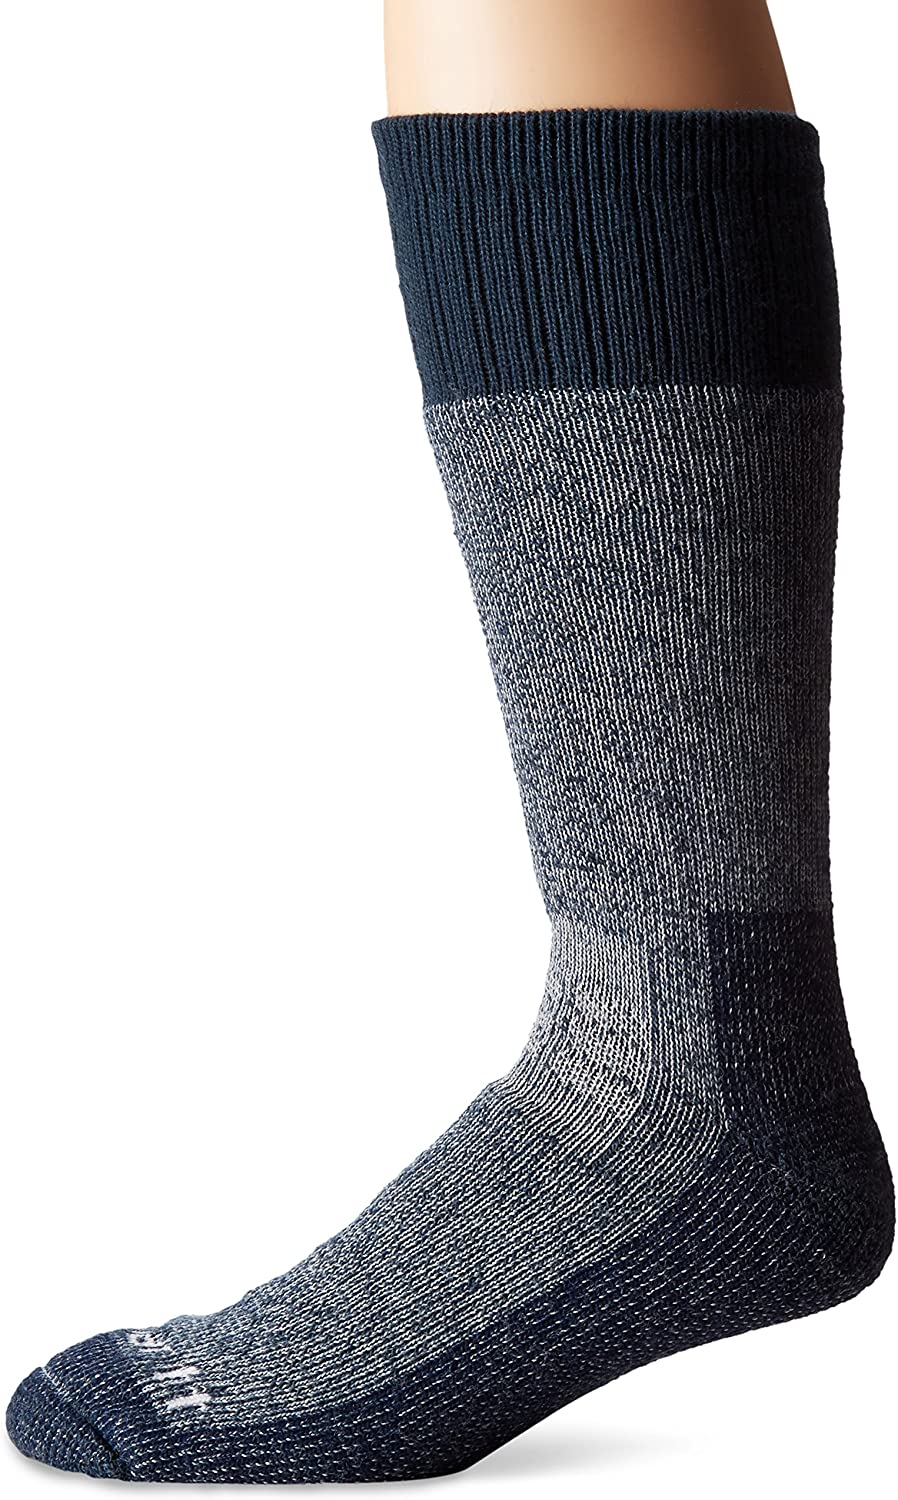 Carhartt mens Extremes Cold Weather Boot Socks